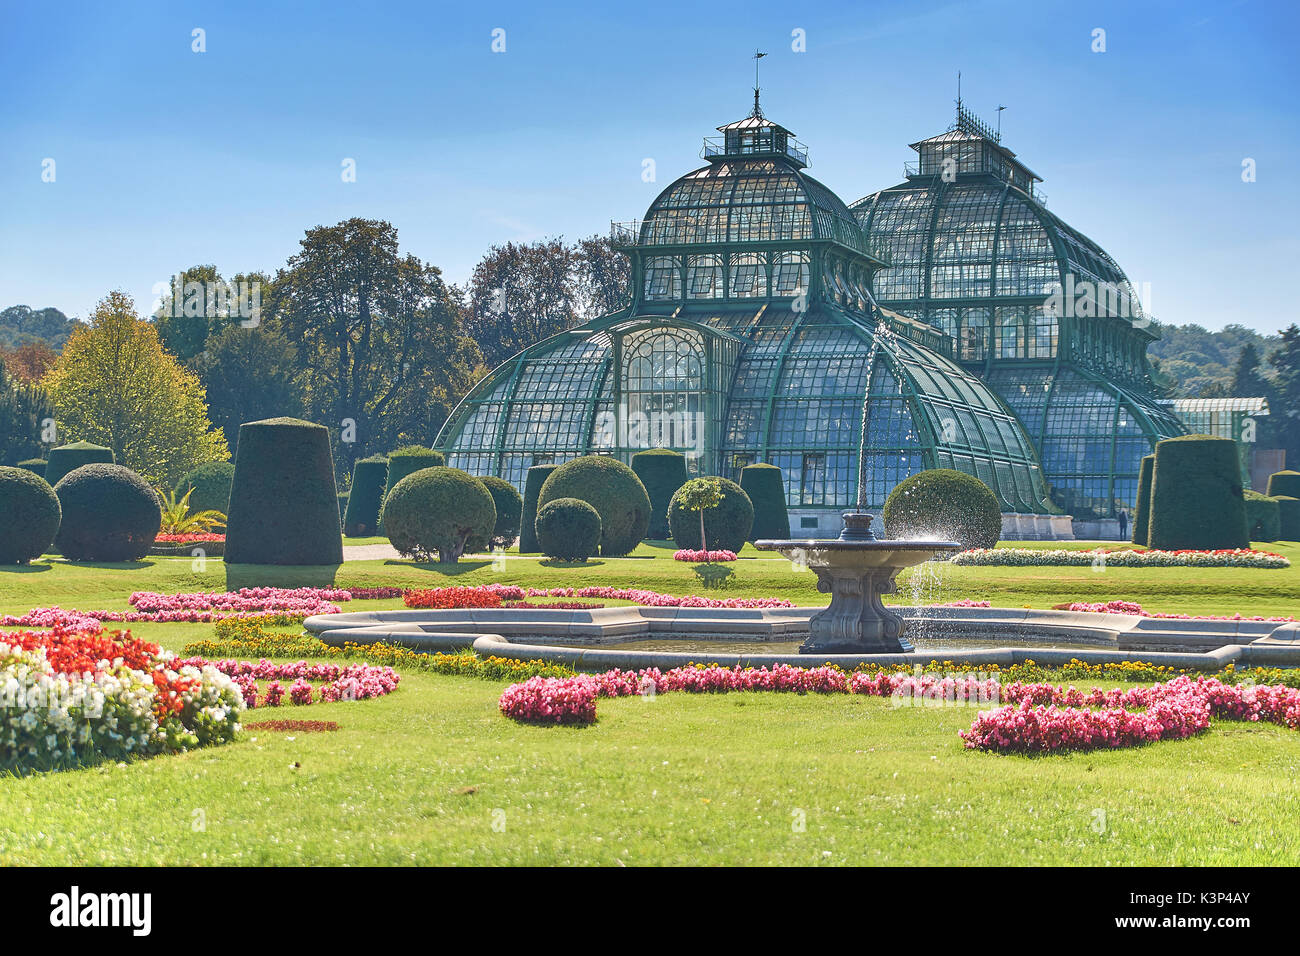 Vienna, Austria - September 24, 2014: Botanical garden near Schonbrunn palace in Vienna - Stock Image